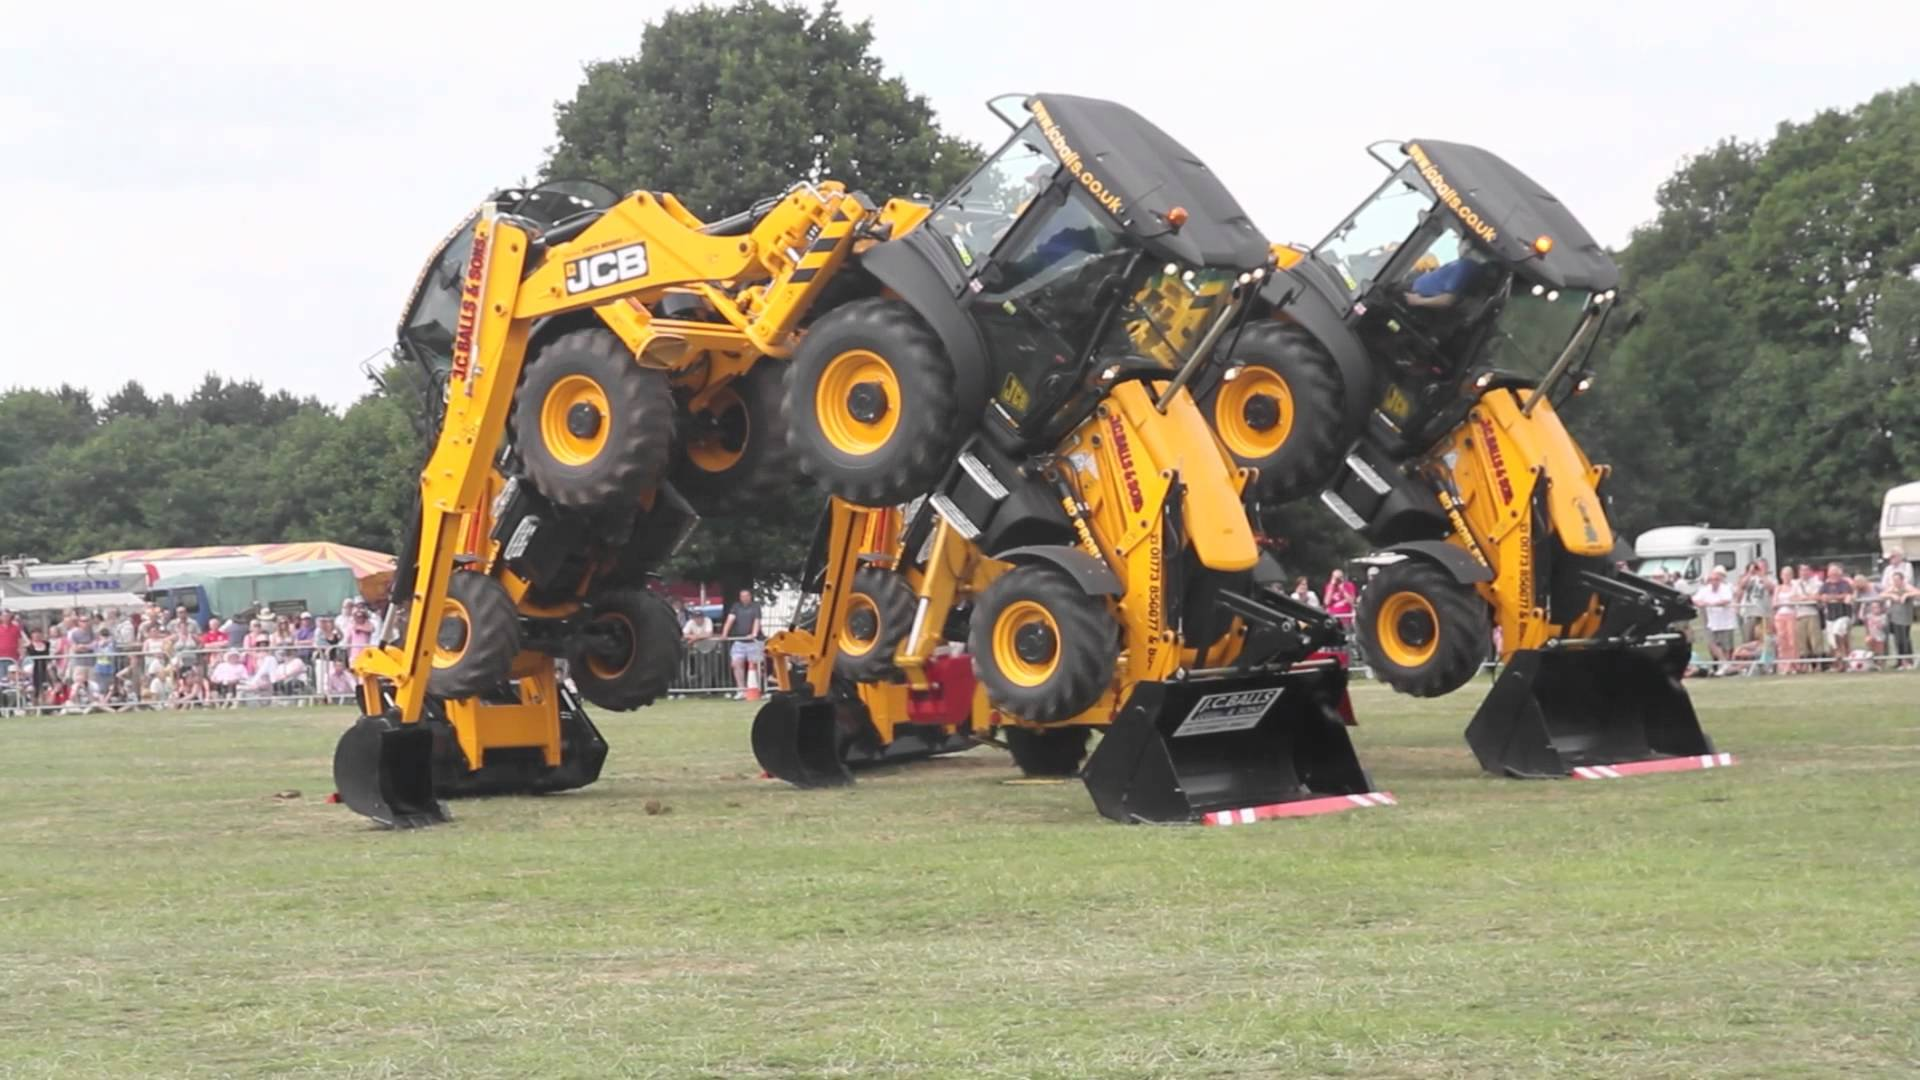 3d Effect Live Wallpaper Download Jcb Machine Wallpaper Gallery